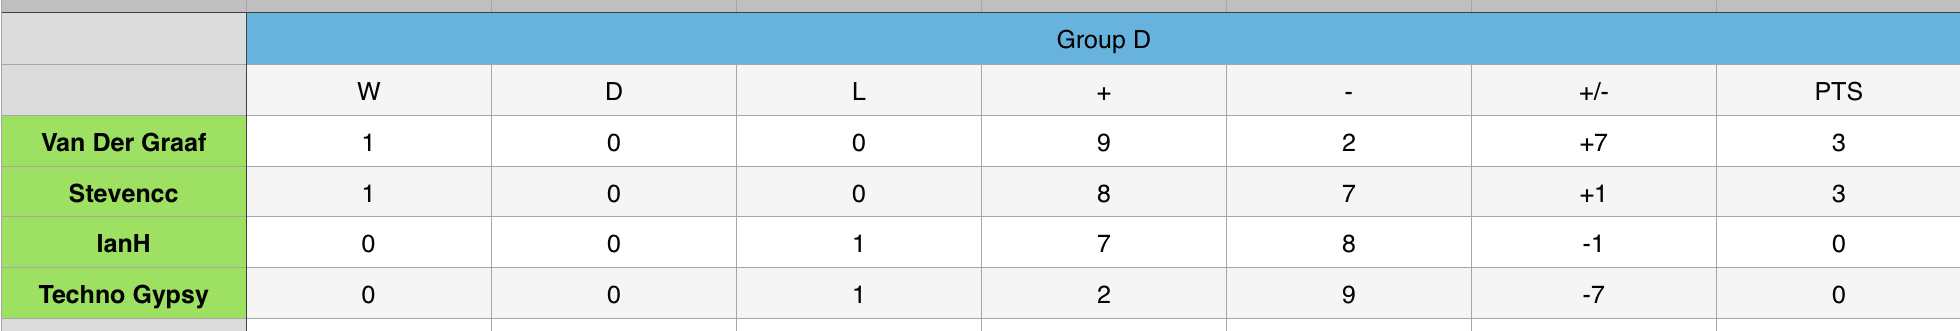 Group D.png